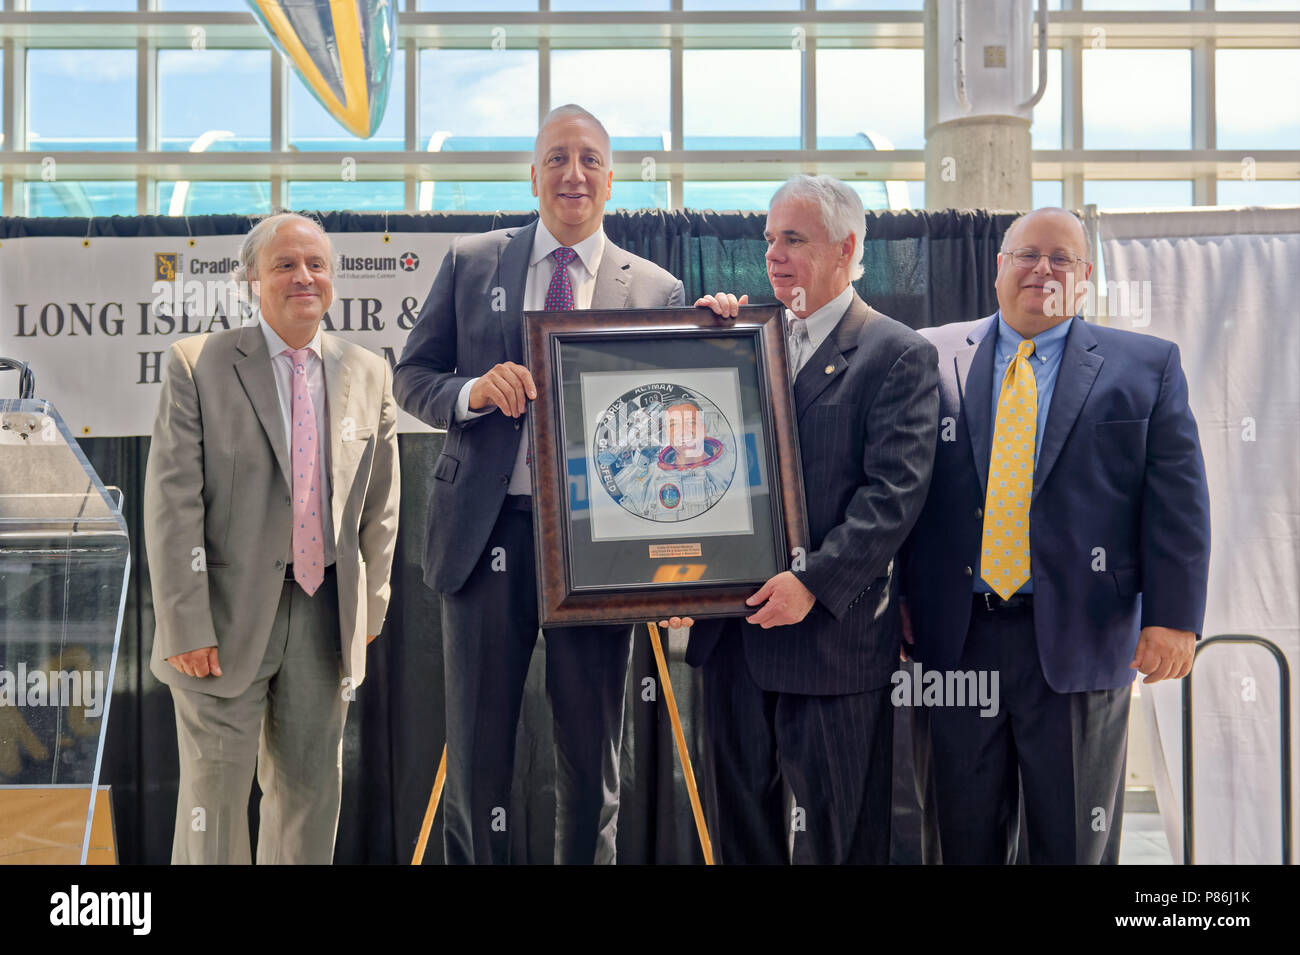 Garden City, New York, USA. 21st June, 2018. On stage, L-R, JOSHUA STOFF, Curator of Cradle of Aviation Museum; former NASA astronaut MICHAEL MASSIMINO; ANDREW PARTON the Executive Director of CAM; and GREG SANTI the Human Resources Manager at Curtiss Wright, pose with official illustration of Long Island Air & Space Hall of Fame inductee Massimino at 10th Annual Luncheon at Cradle of Aviation. Credit: Ann Parry/ZUMA Wire/Alamy Live News - Stock Image